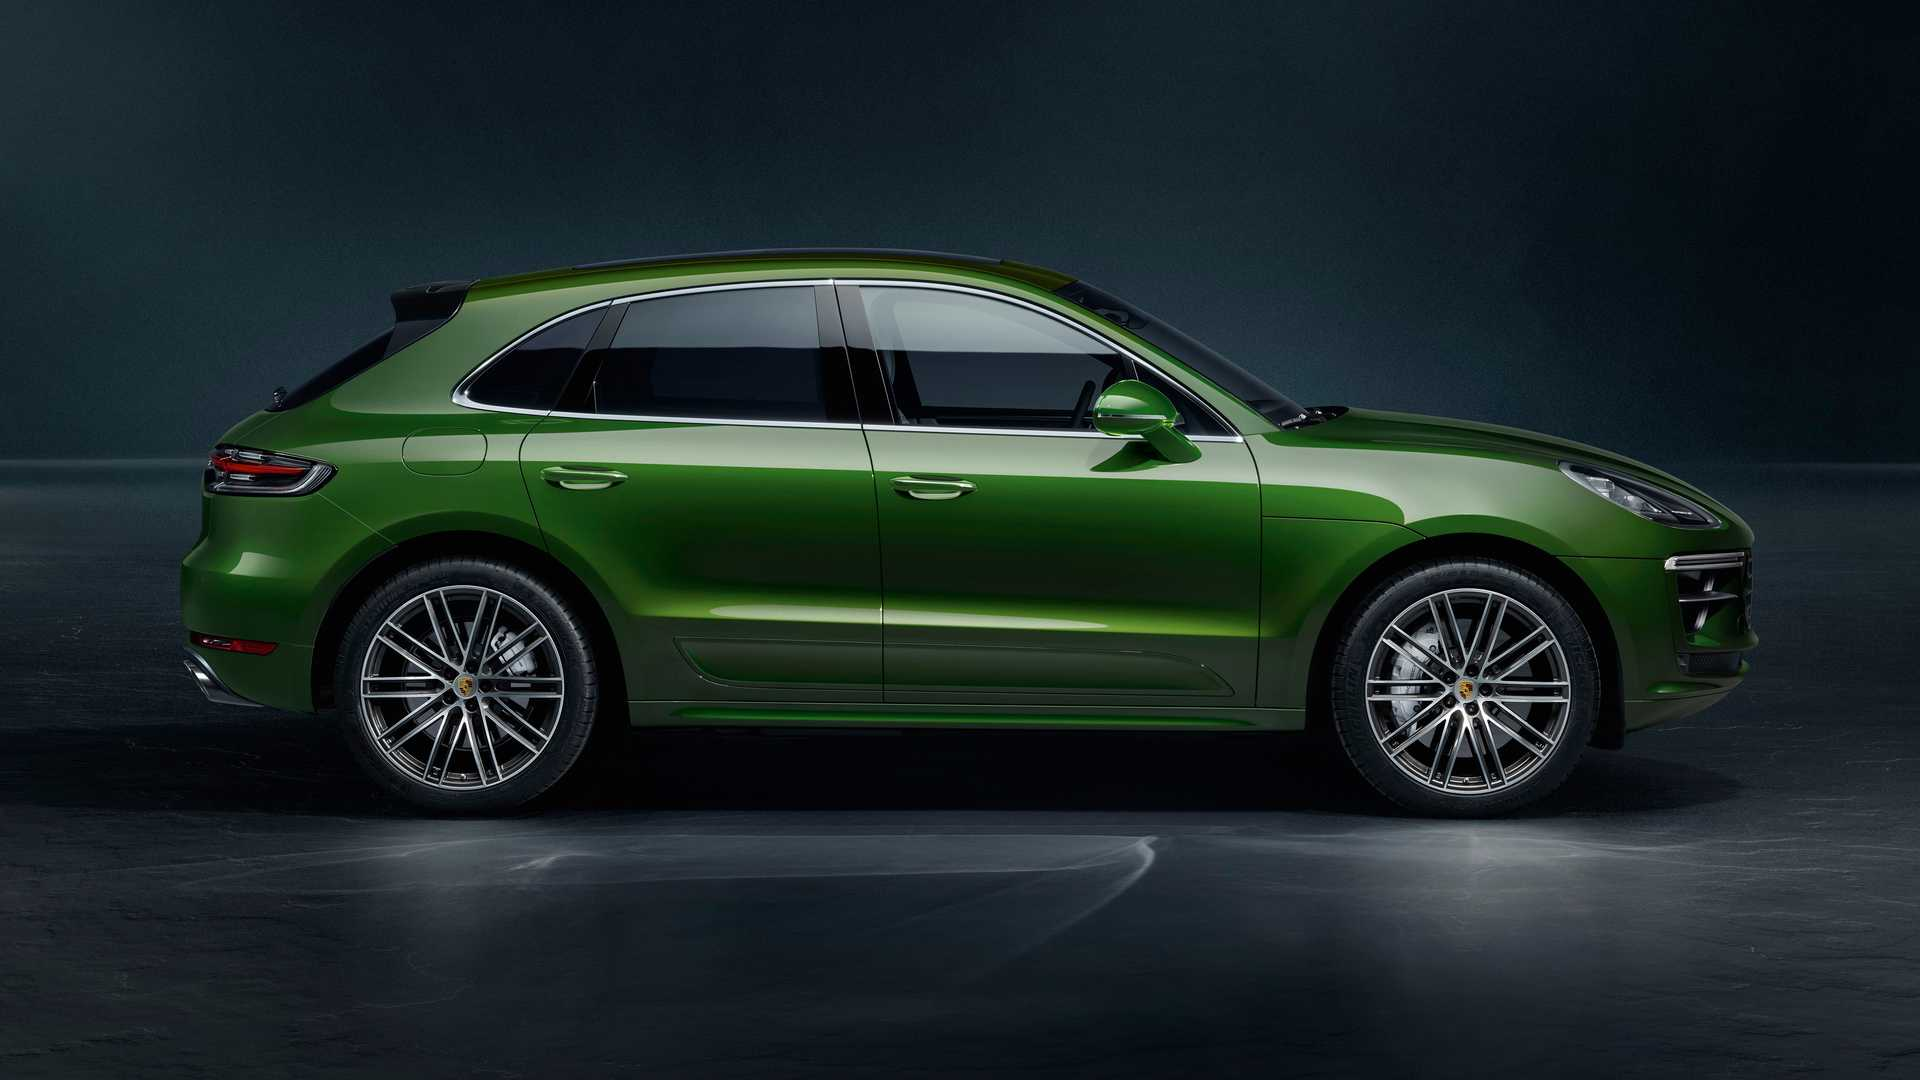 2021 Porsche Macan Redesign, Turbo, GTS, And Specs >> 2020 Porsche Macan Turbo Is A 435 Hp Sports Car Masquerading